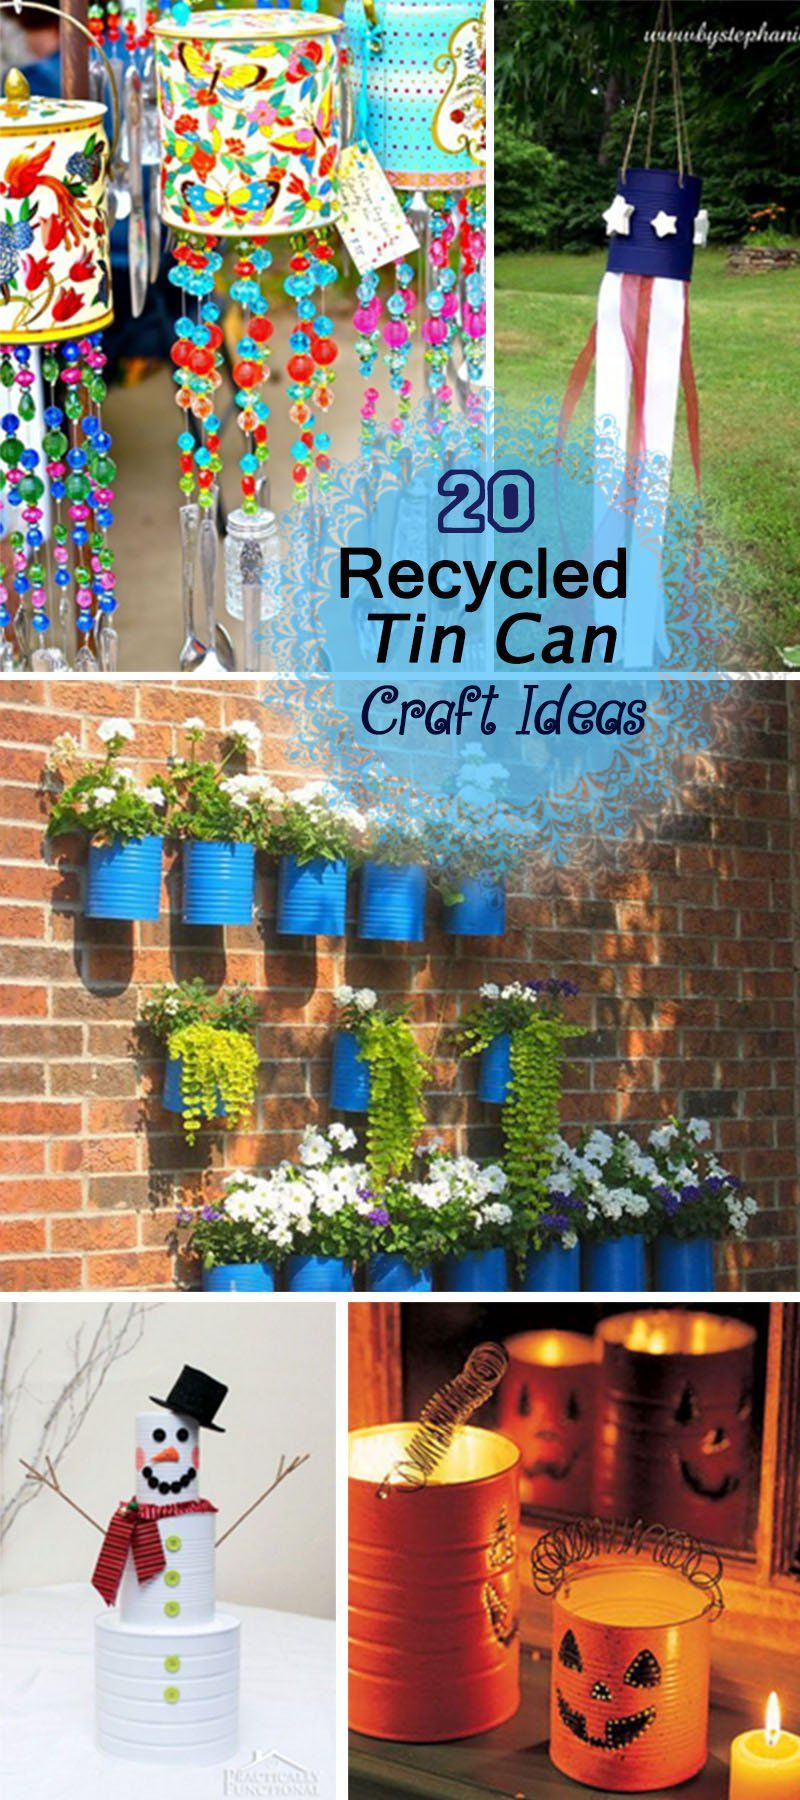 Reciclado creativa de la lata craft ideas jardin for Jardines en lata